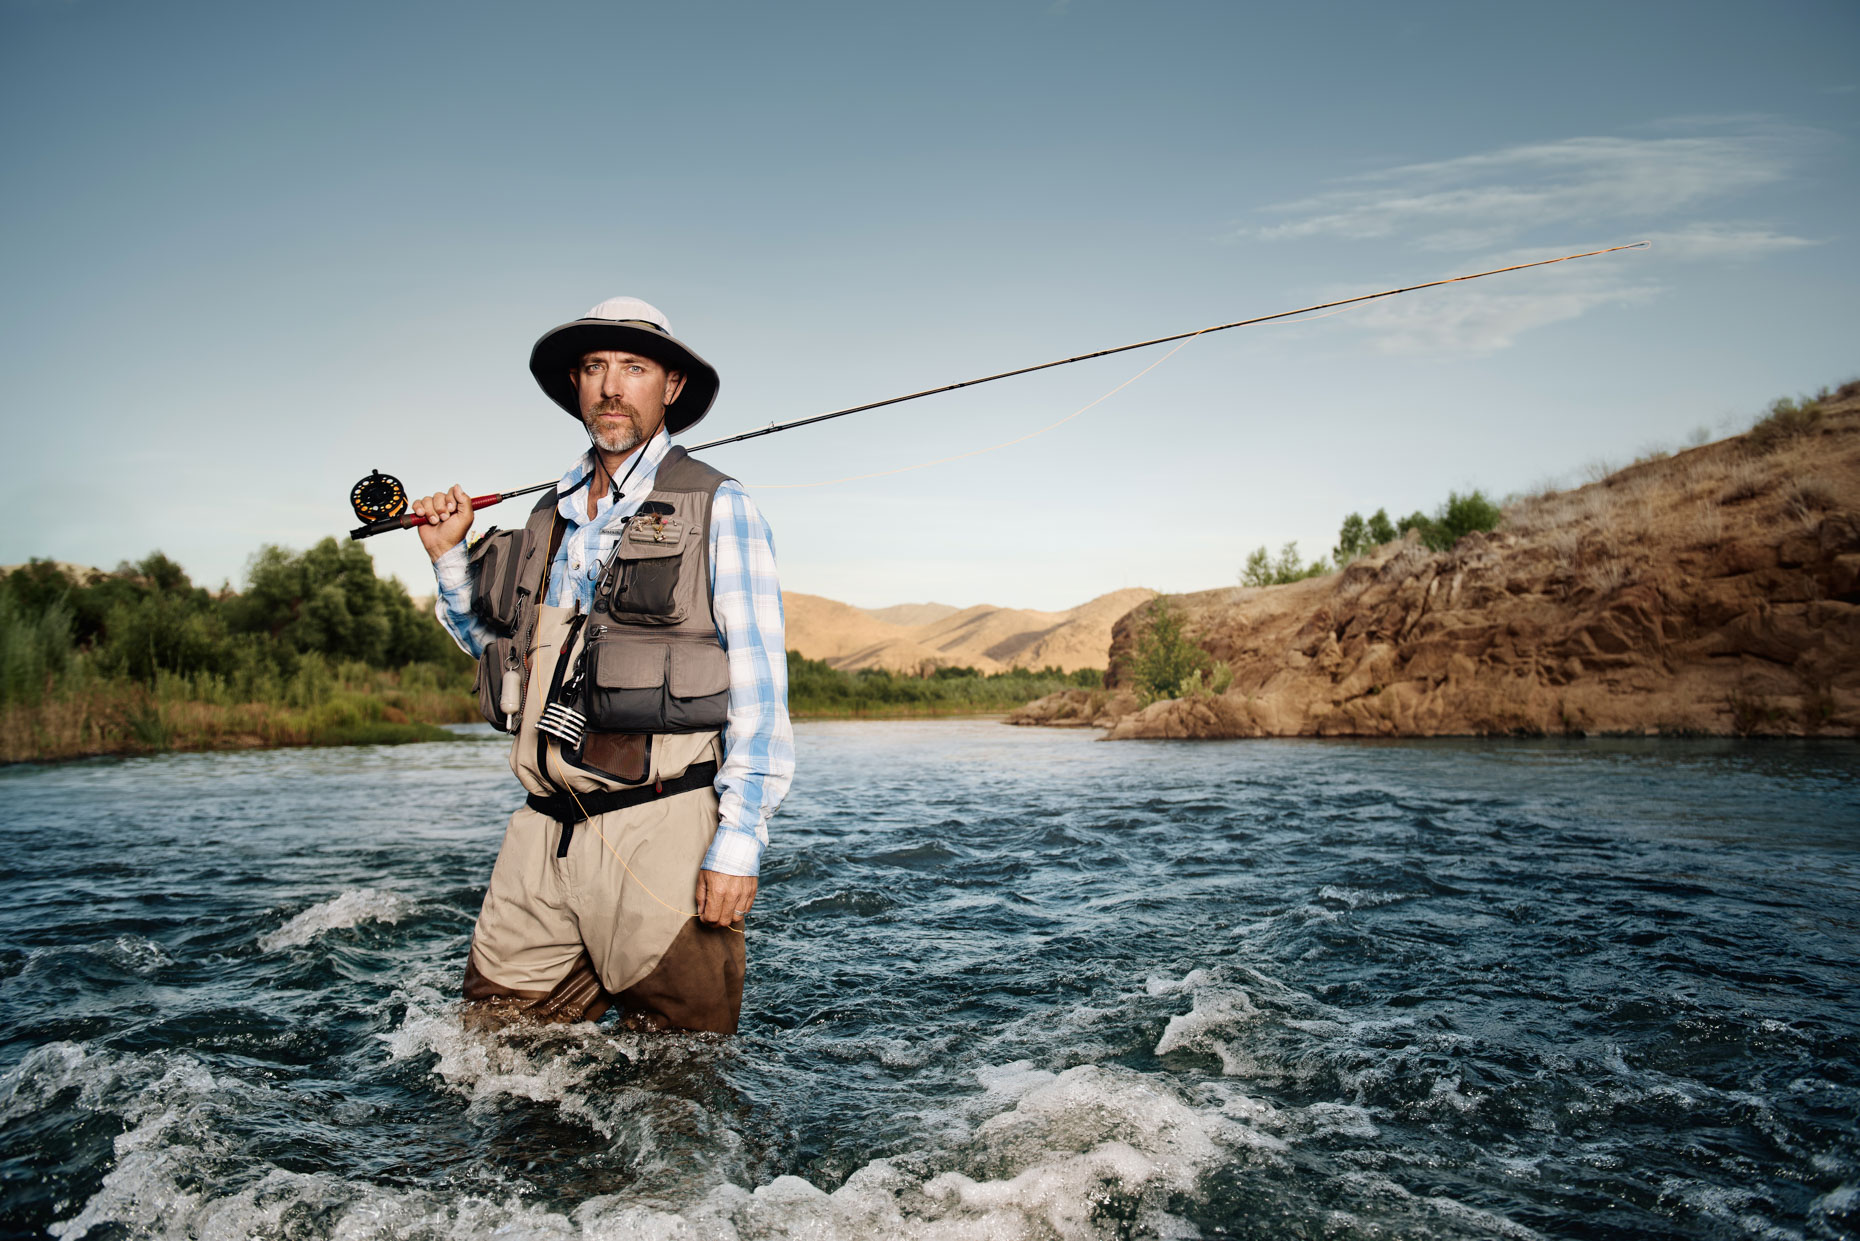 kern-fisherman-in-the-kern-river-calififornia